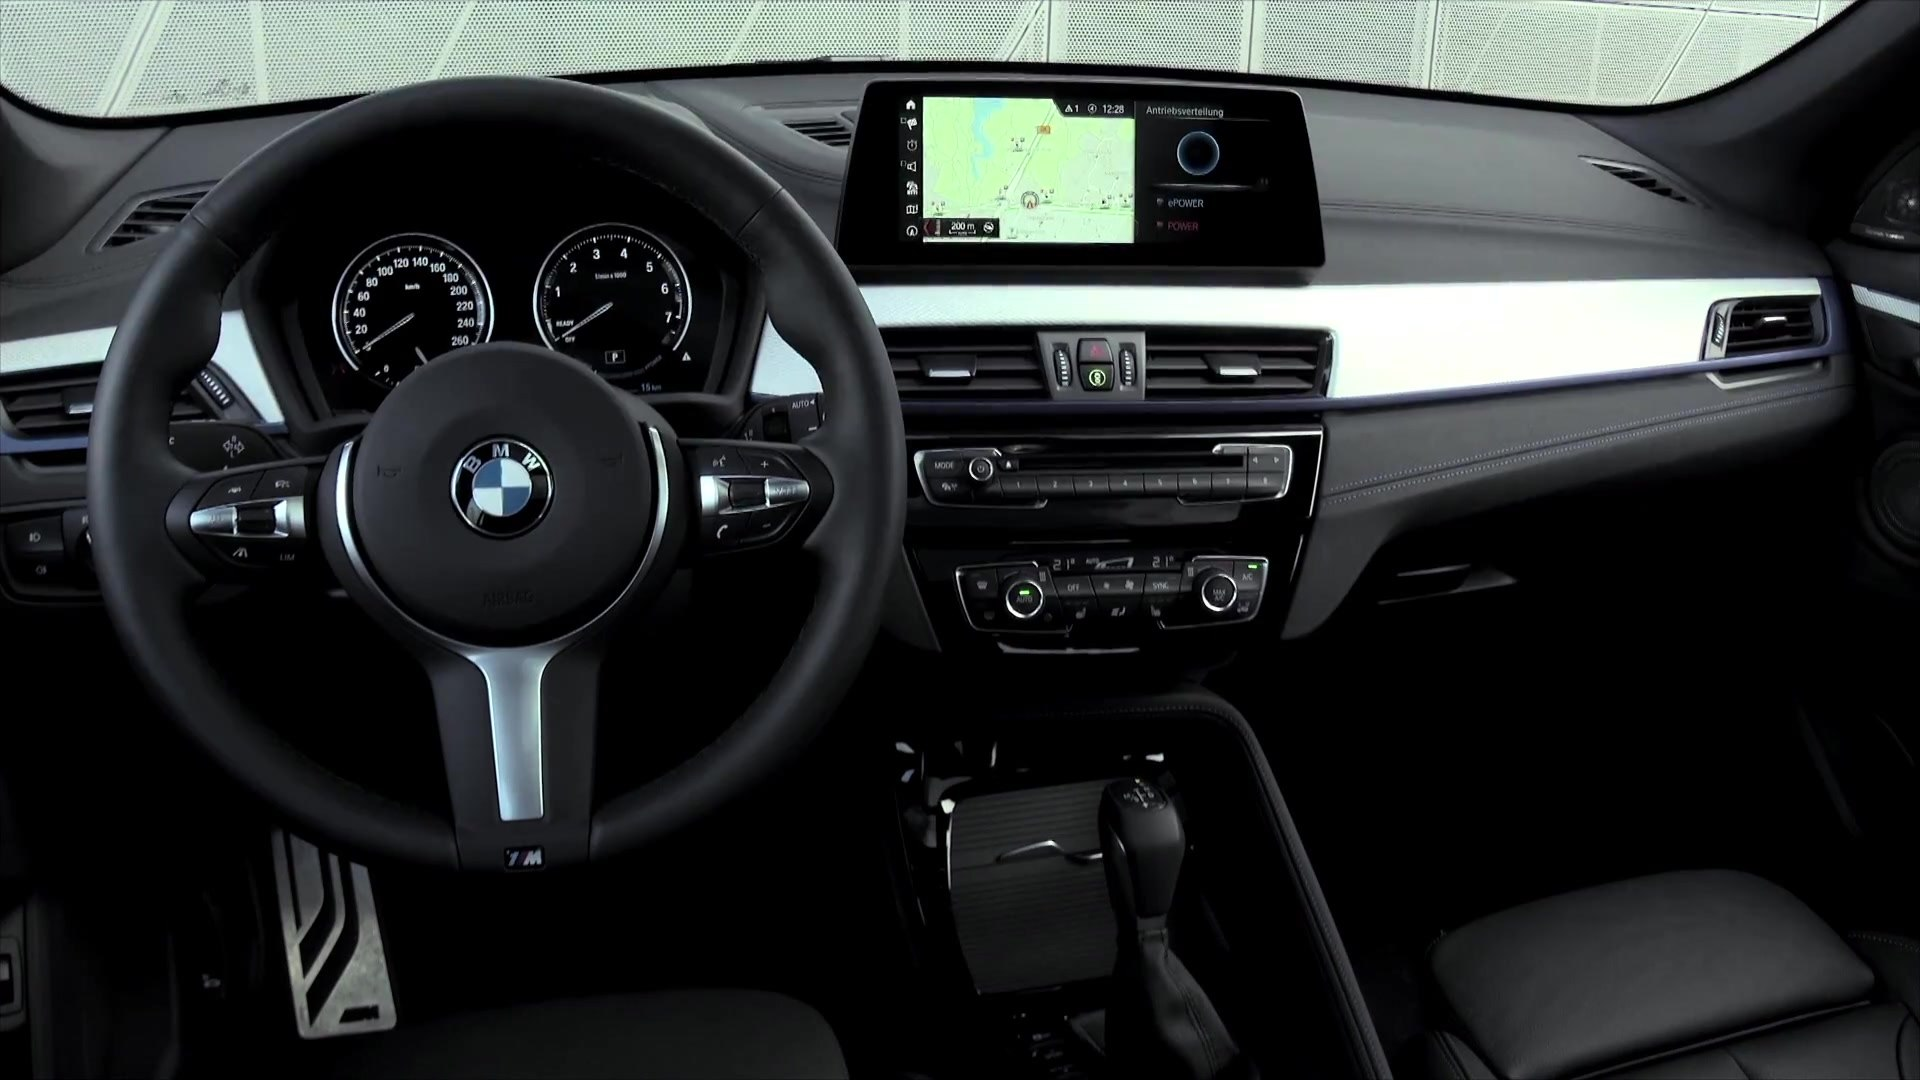 The New Bmw X1 Xdrive25e Design Interior Video Dailymotion